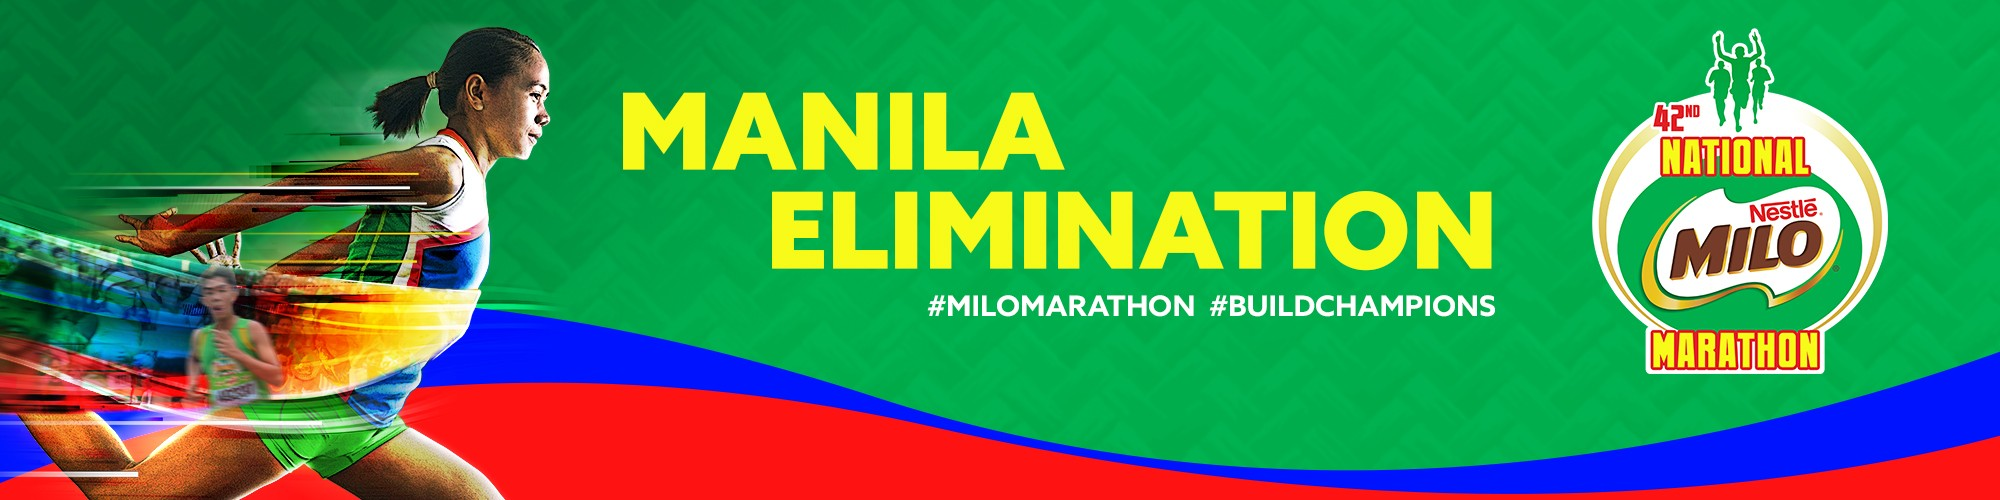 2019 National MILO Marathon Manila Elimination